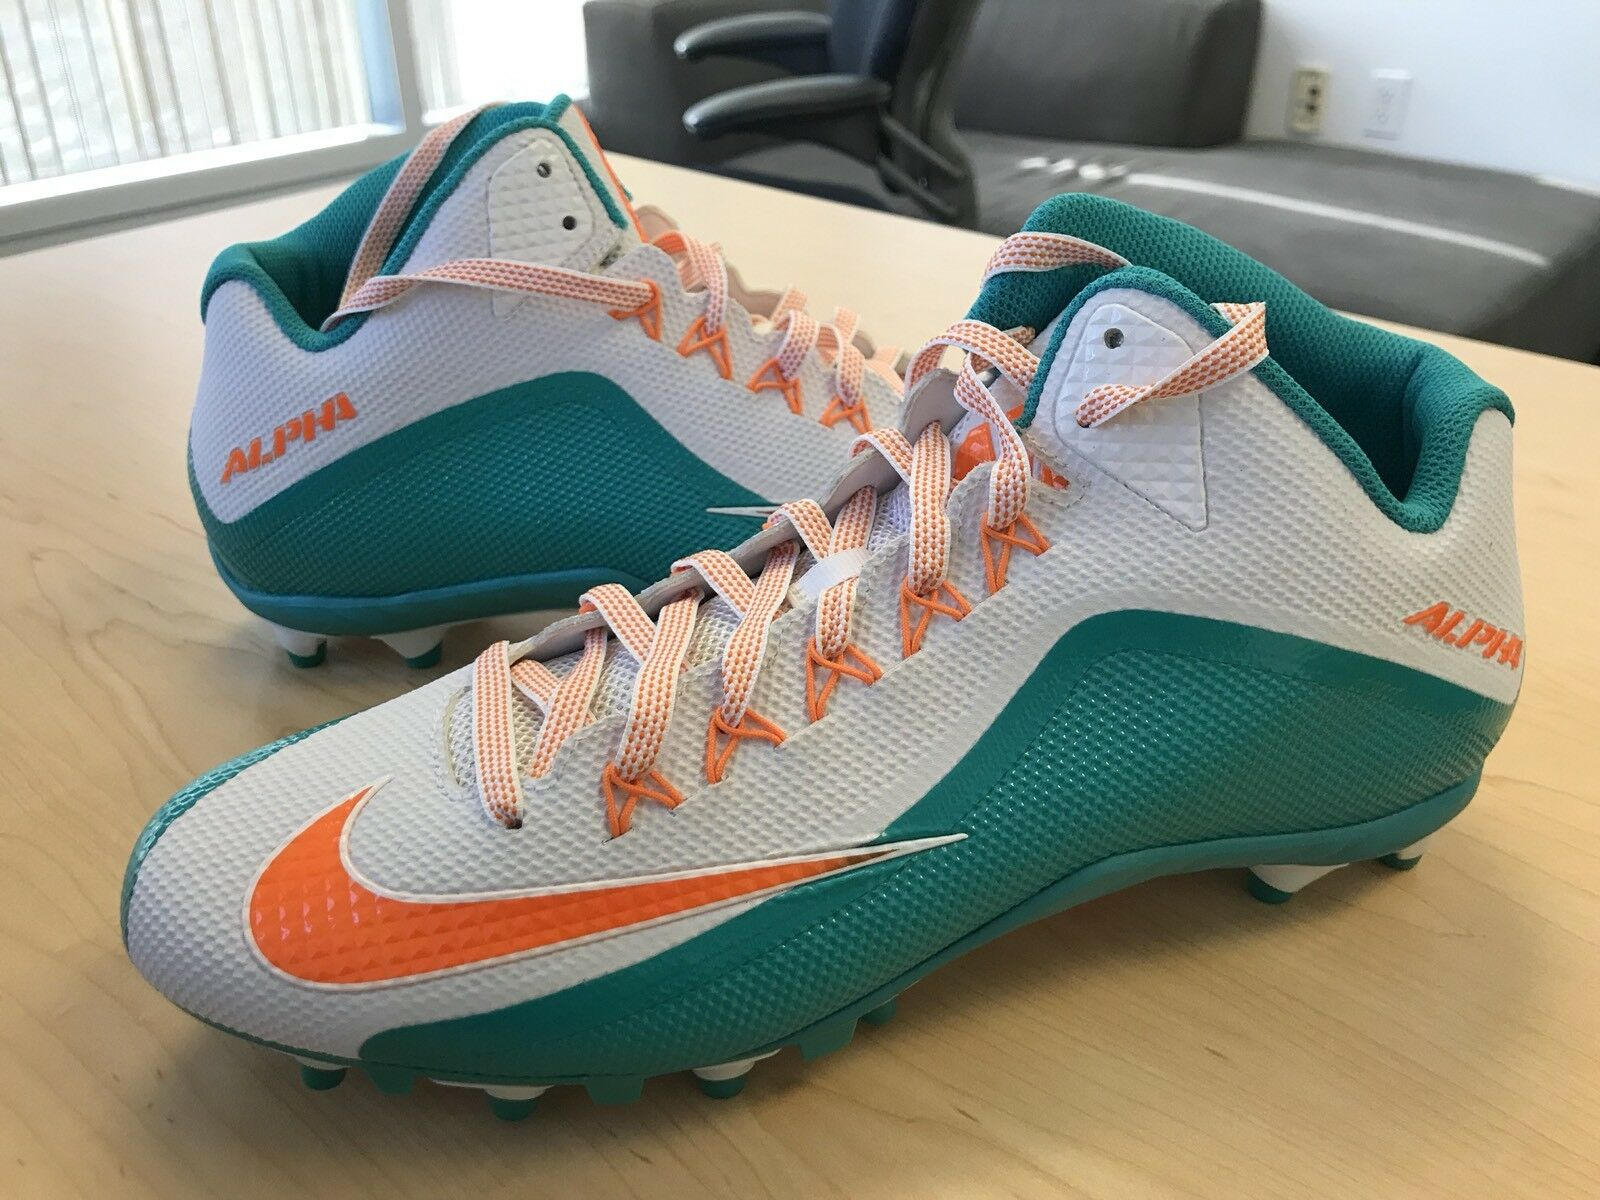 NEW Nike Alpha Pro 2 3/4 TD PF 729444 117 Miami Dolphins Comfortable